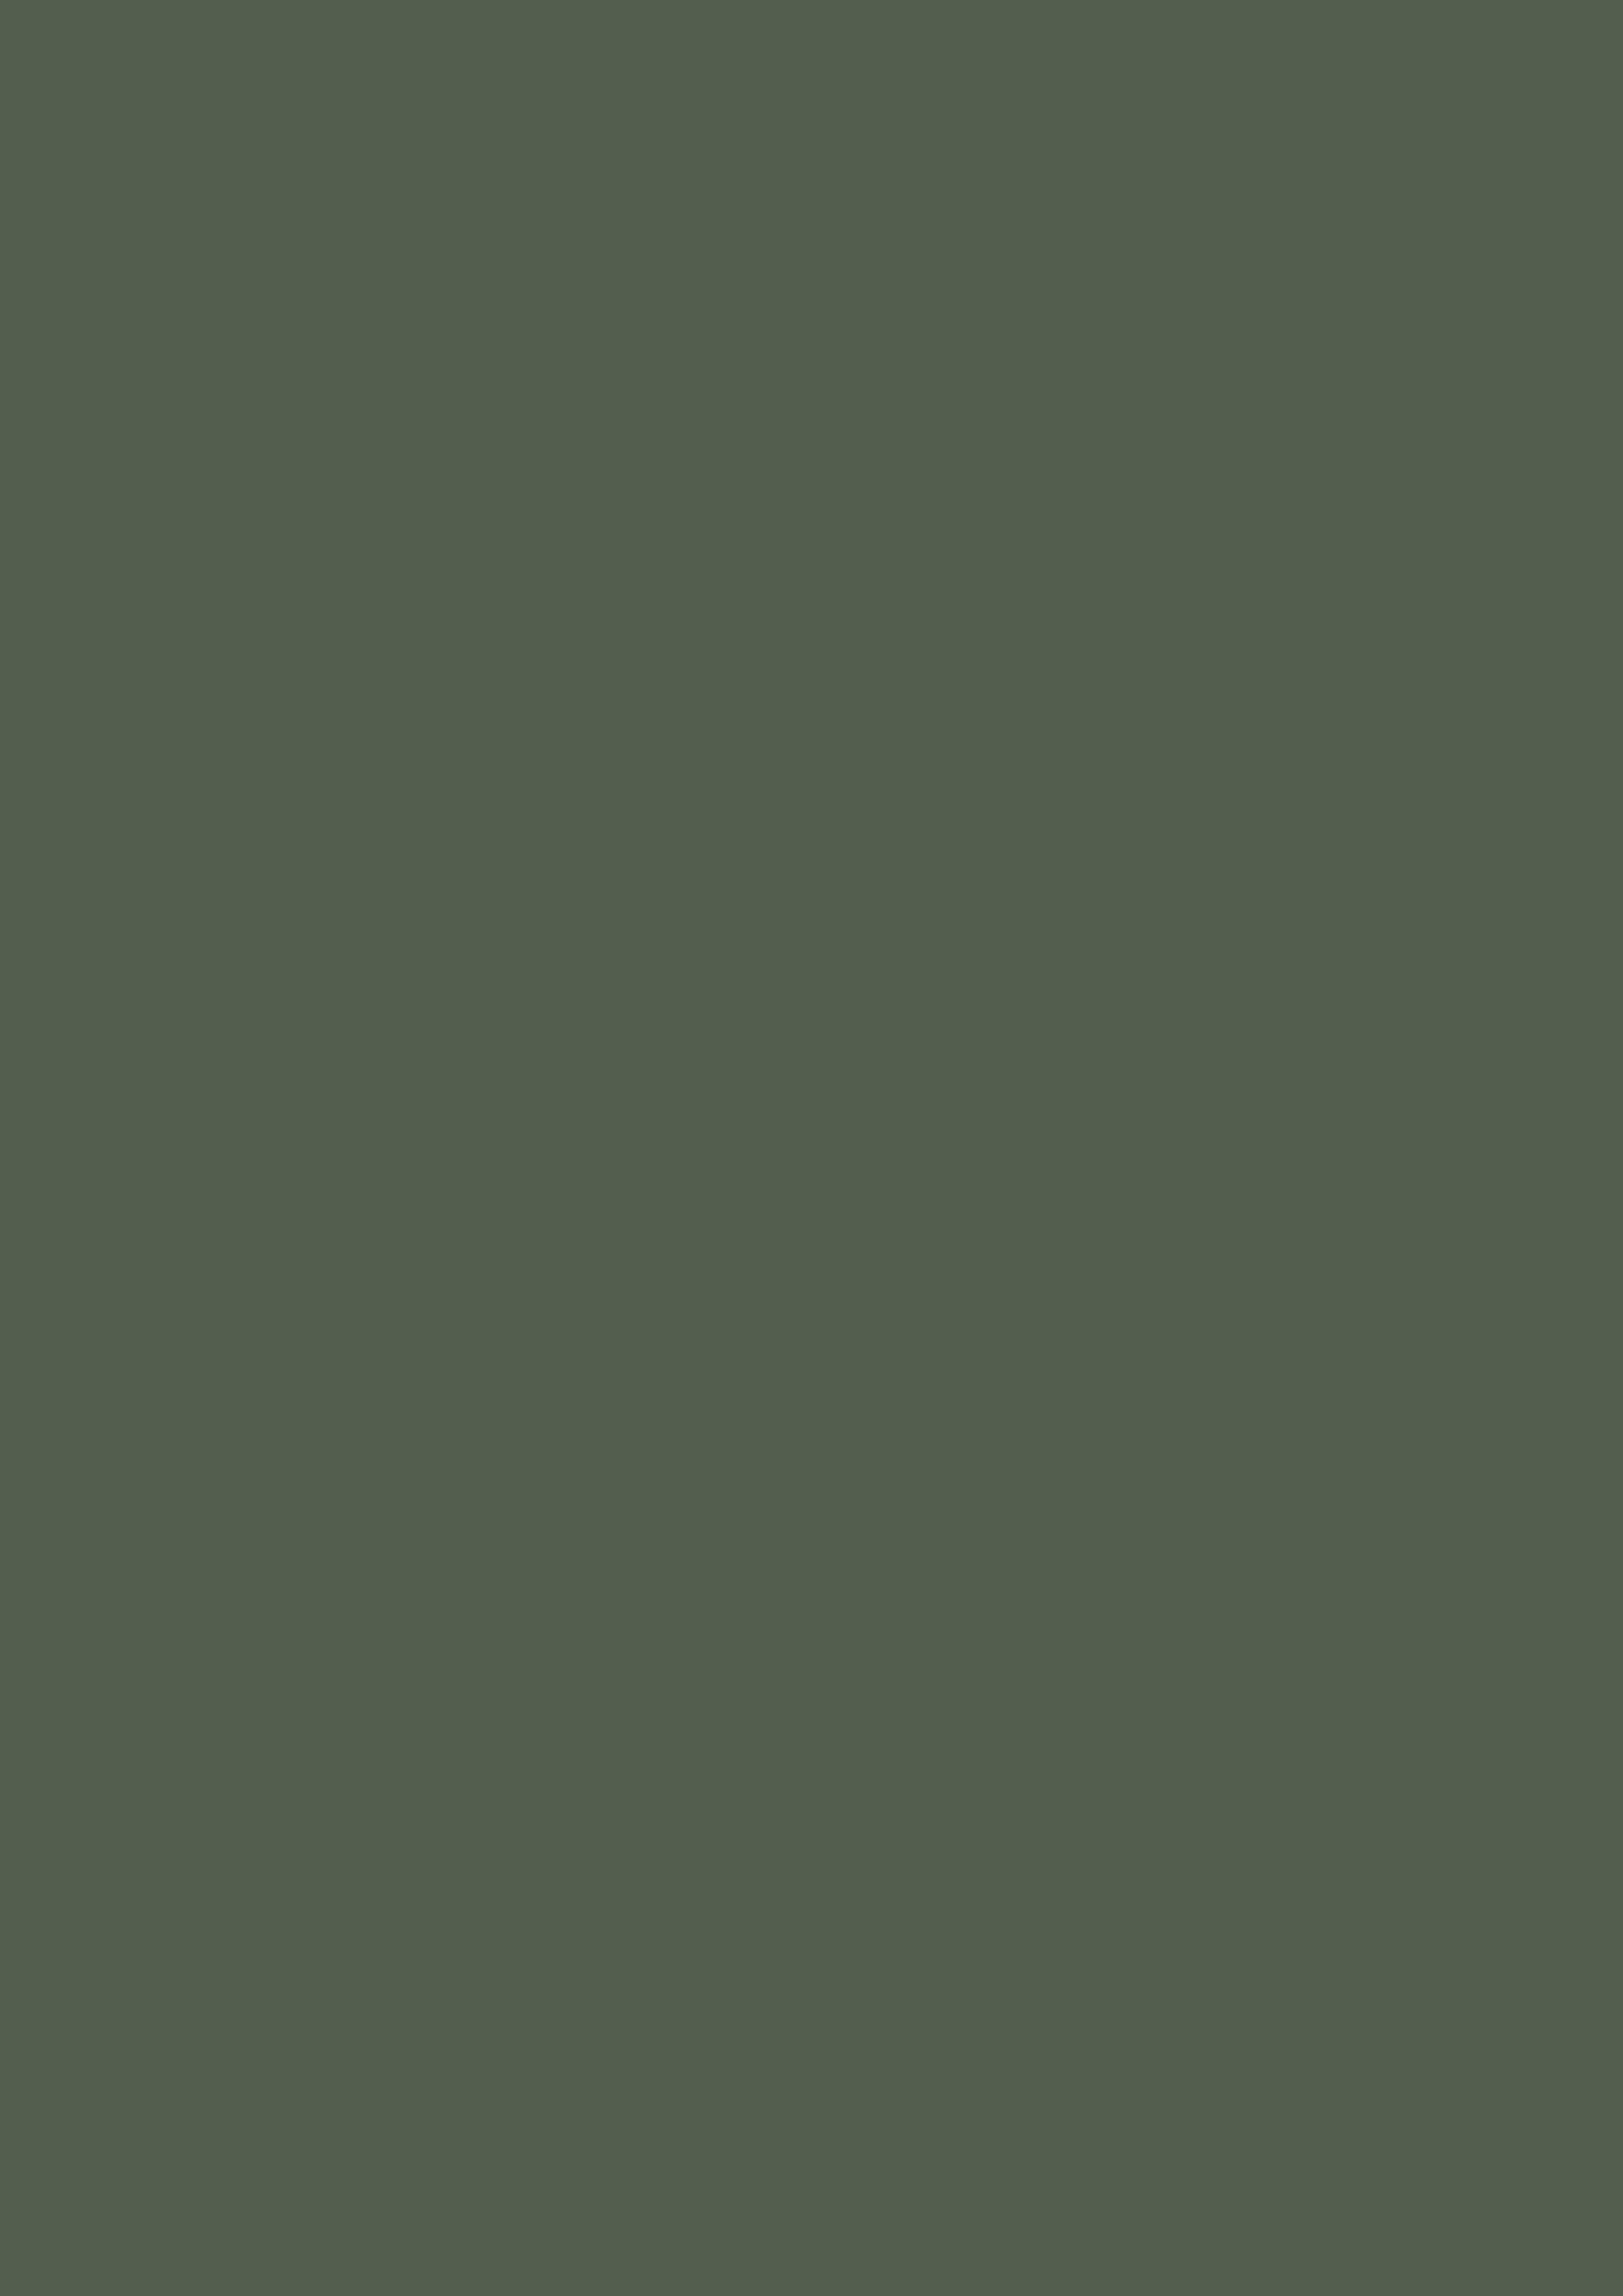 2480x3508 Ebony Solid Color Background